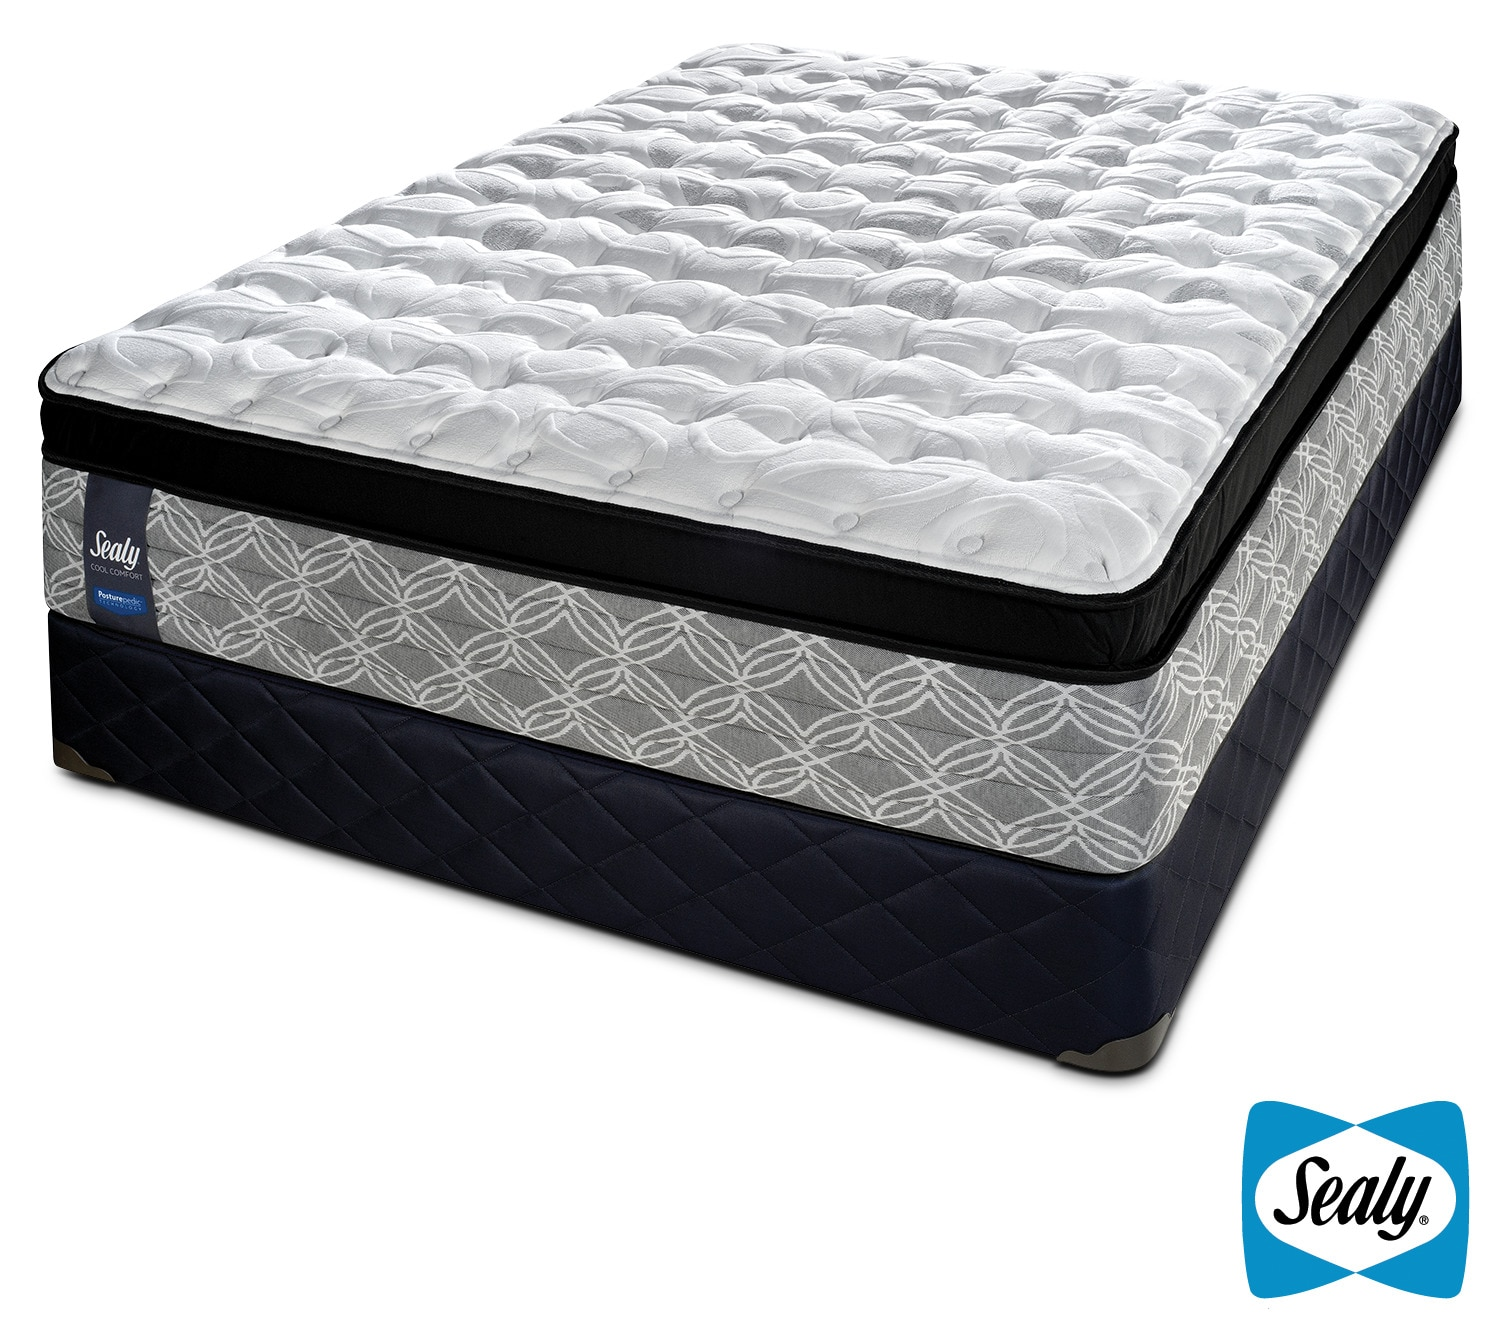 Queen Mattress Set Twin Mattress And Foundation Sets Legend Mattress Hhgregg Mattress: queen mattress cheap